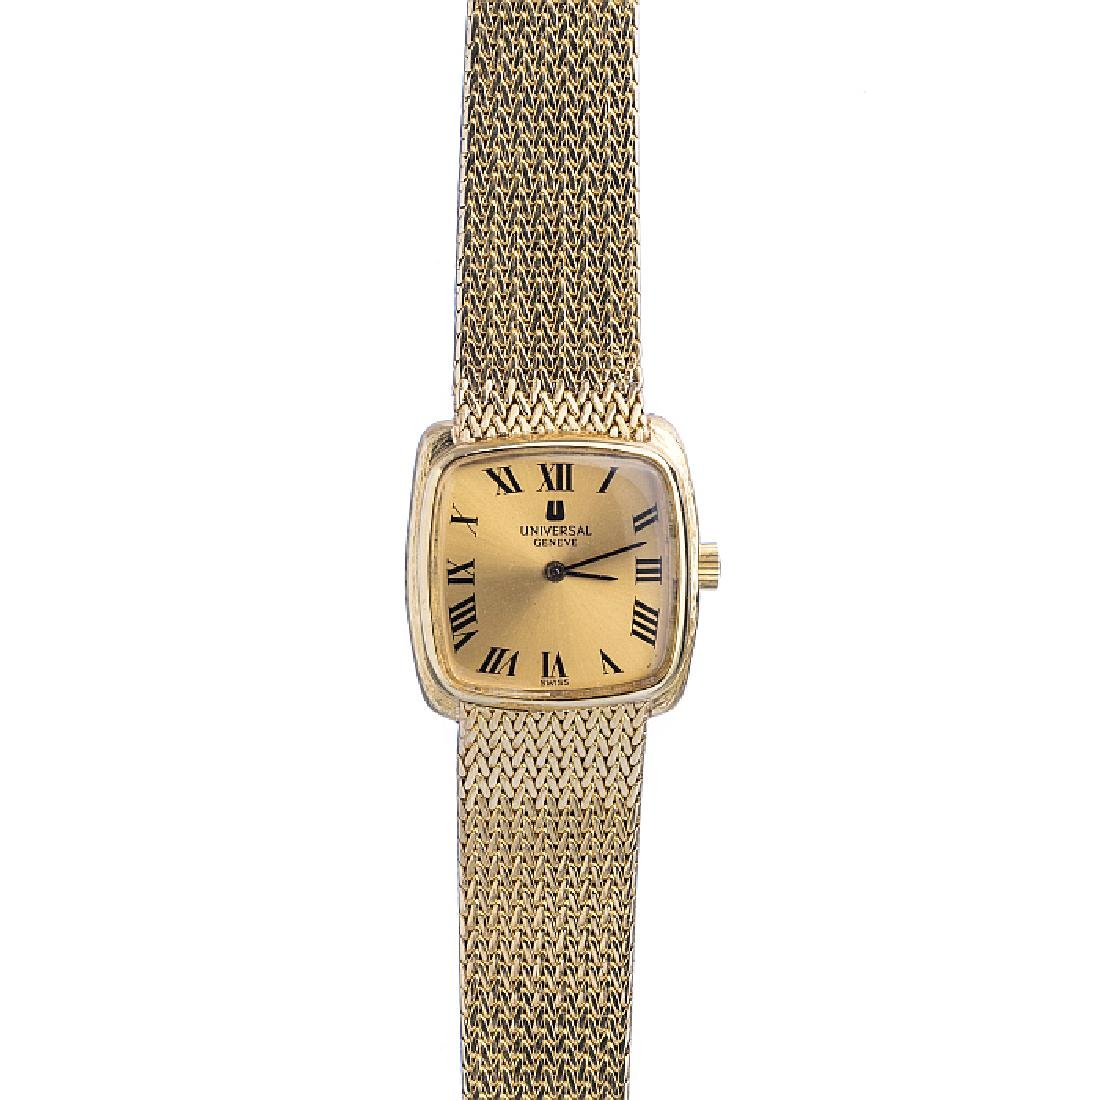 UNIVERSAL -  Watch for ladies